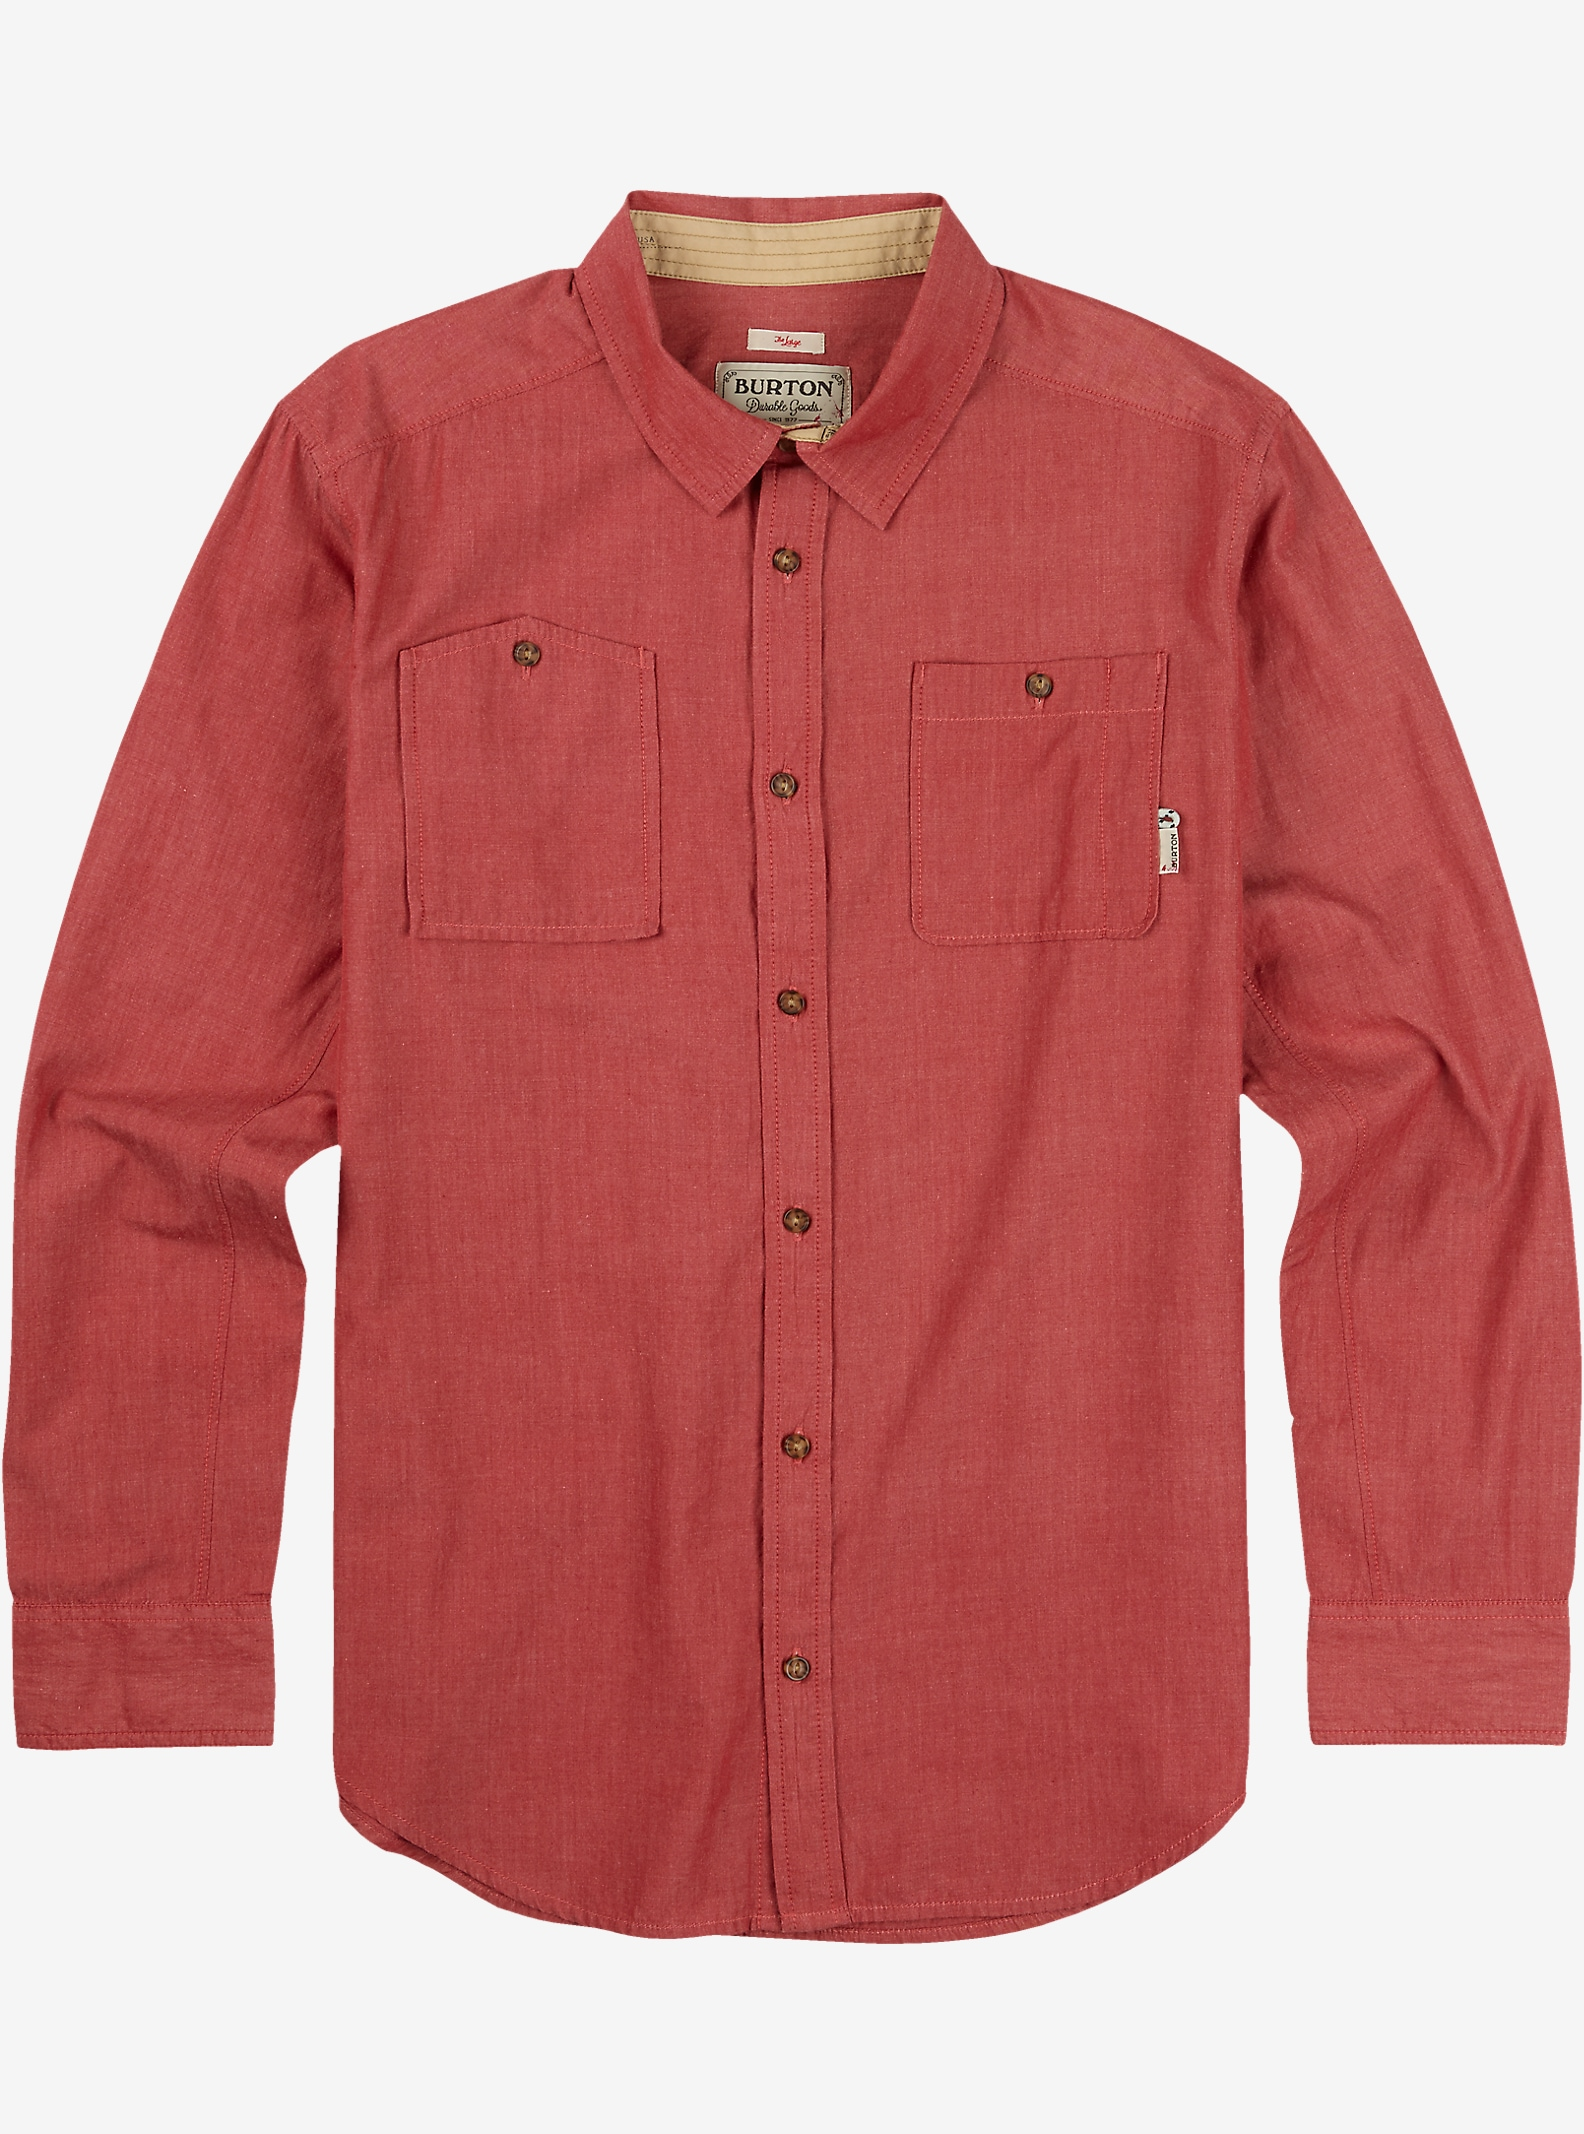 Burton Glade Long Sleeve Shirt shown in Brick Red Chambray